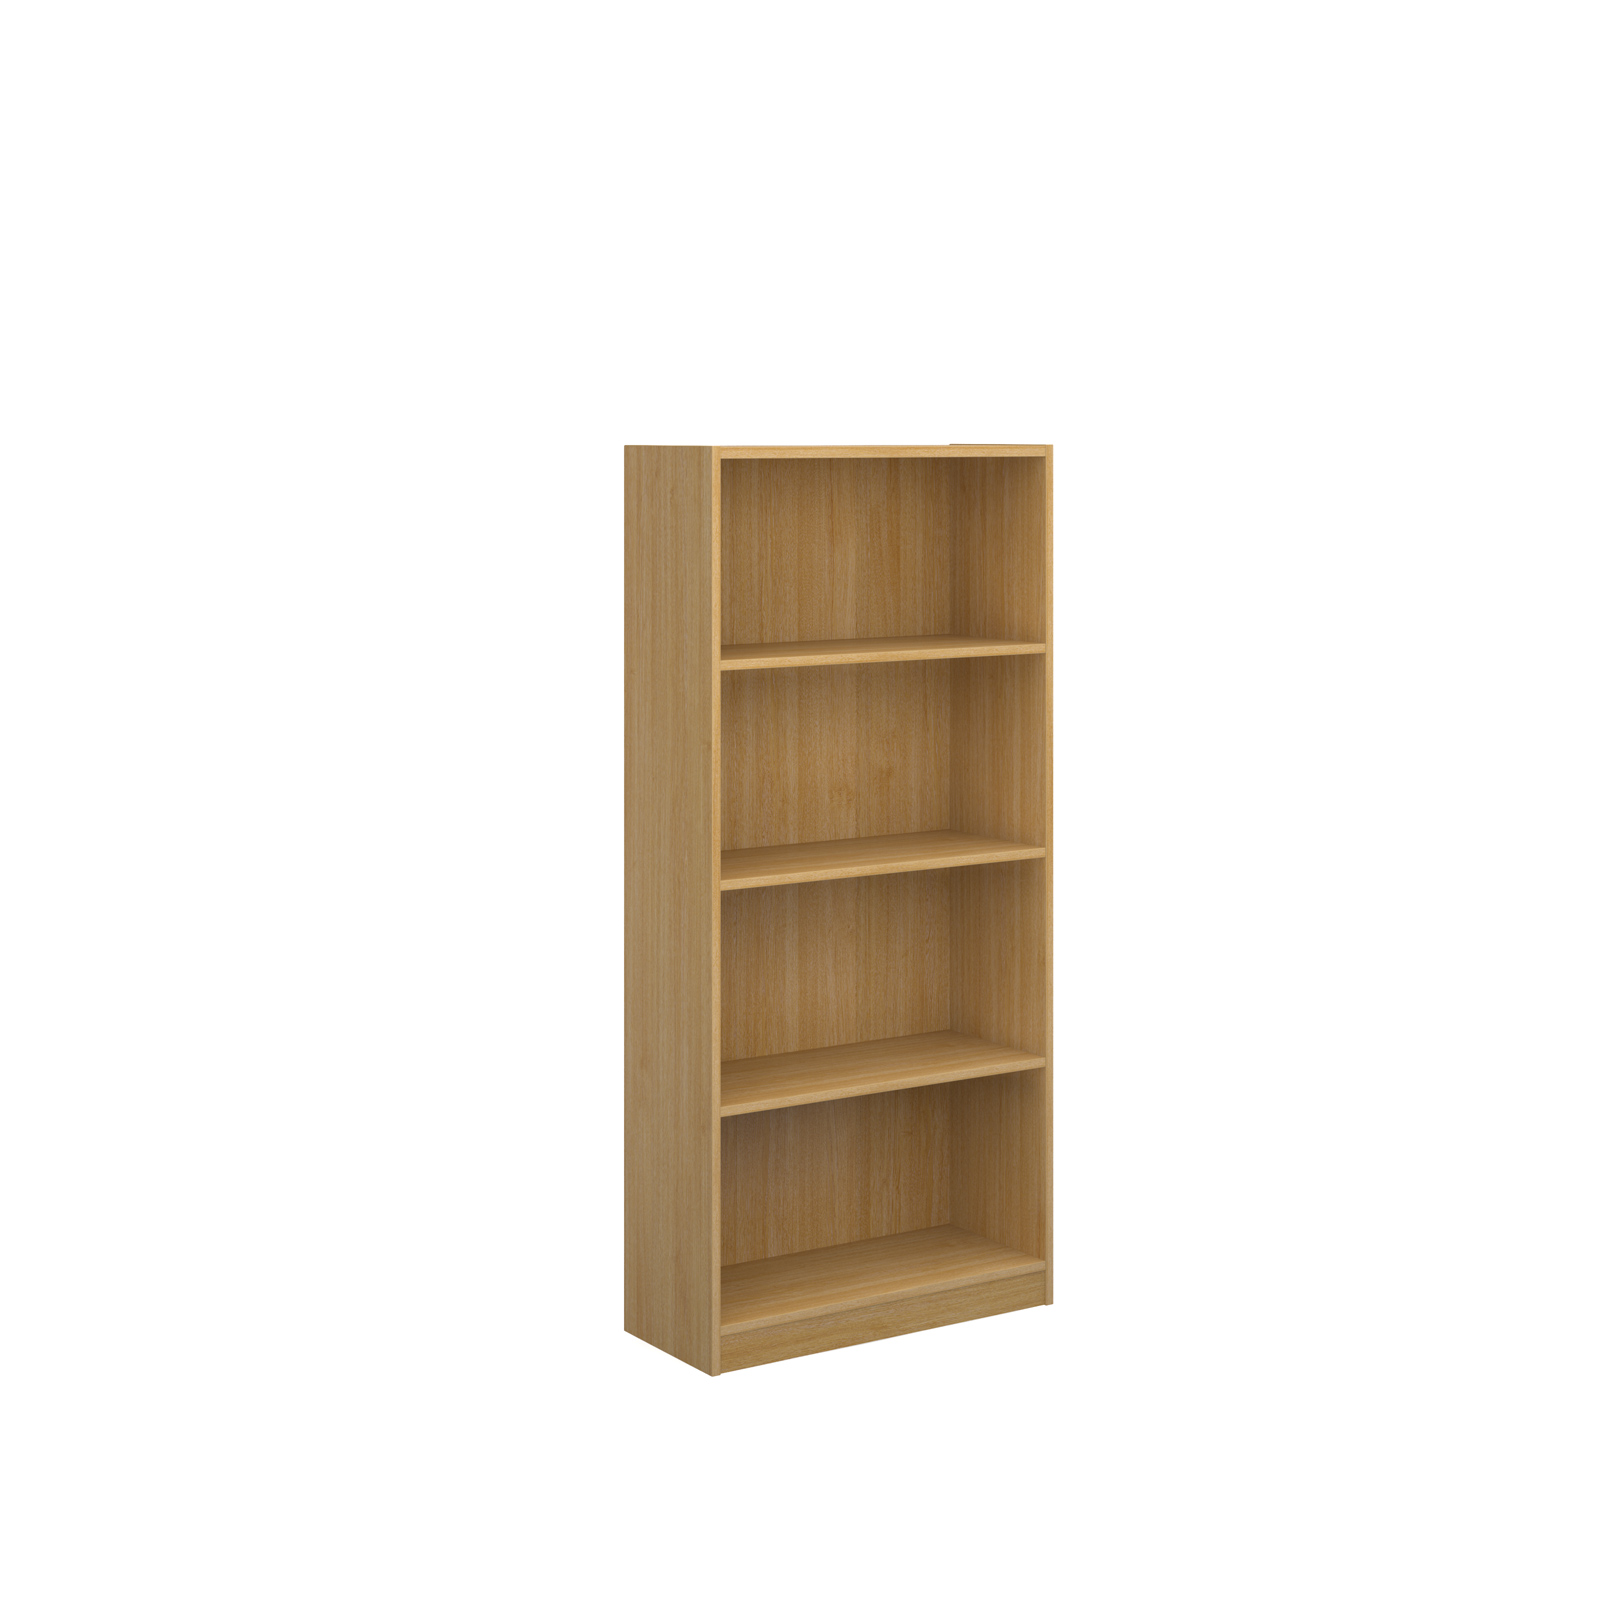 Image for Economy bookcase 1620mm high in oak